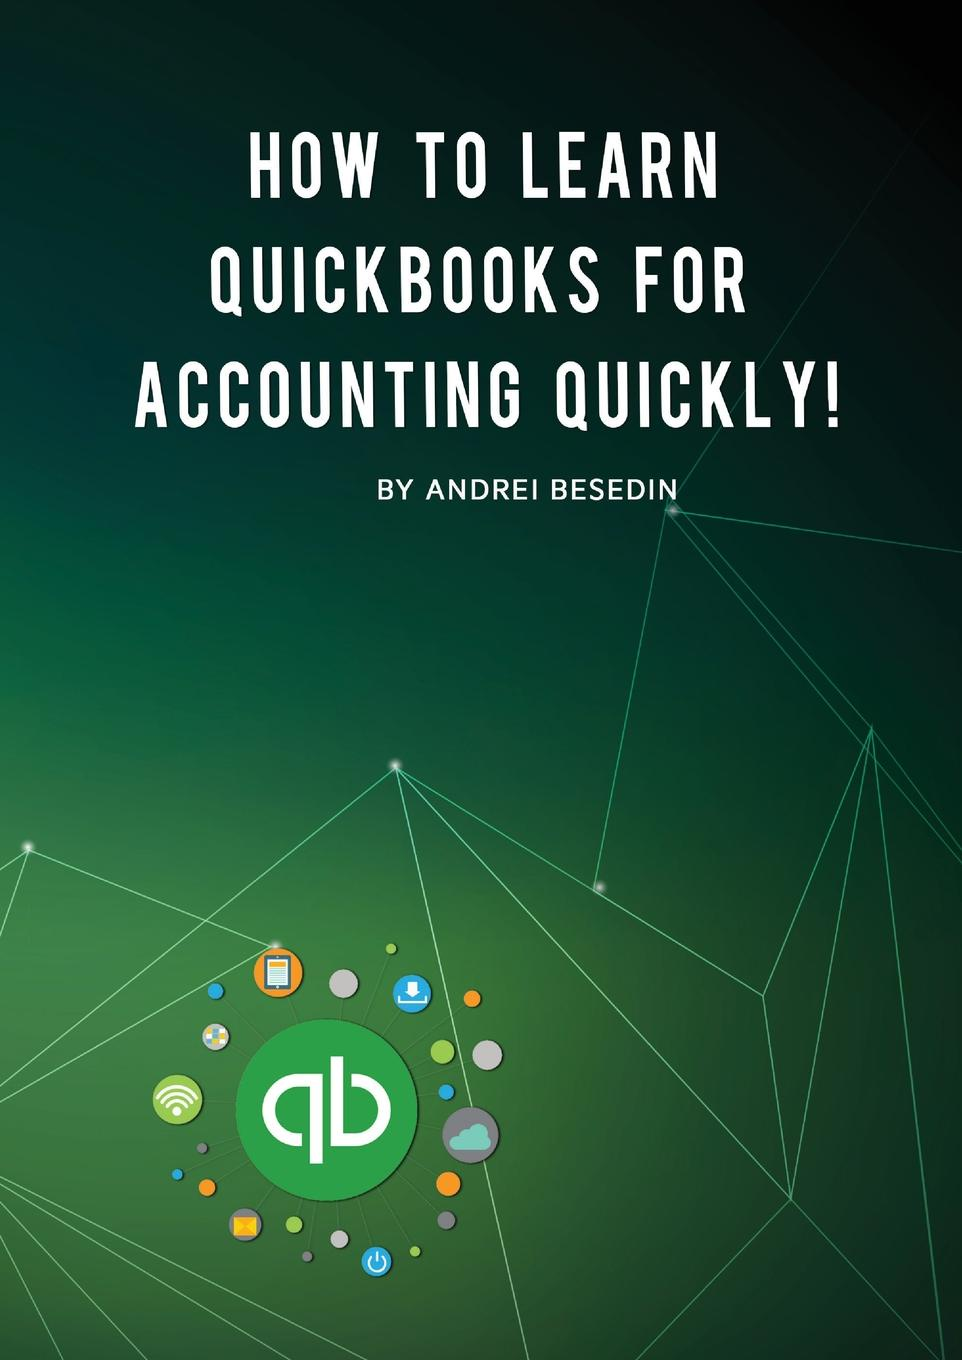 Andrei Besedin. How To Learn Quickbooks For Accounting Quickly.